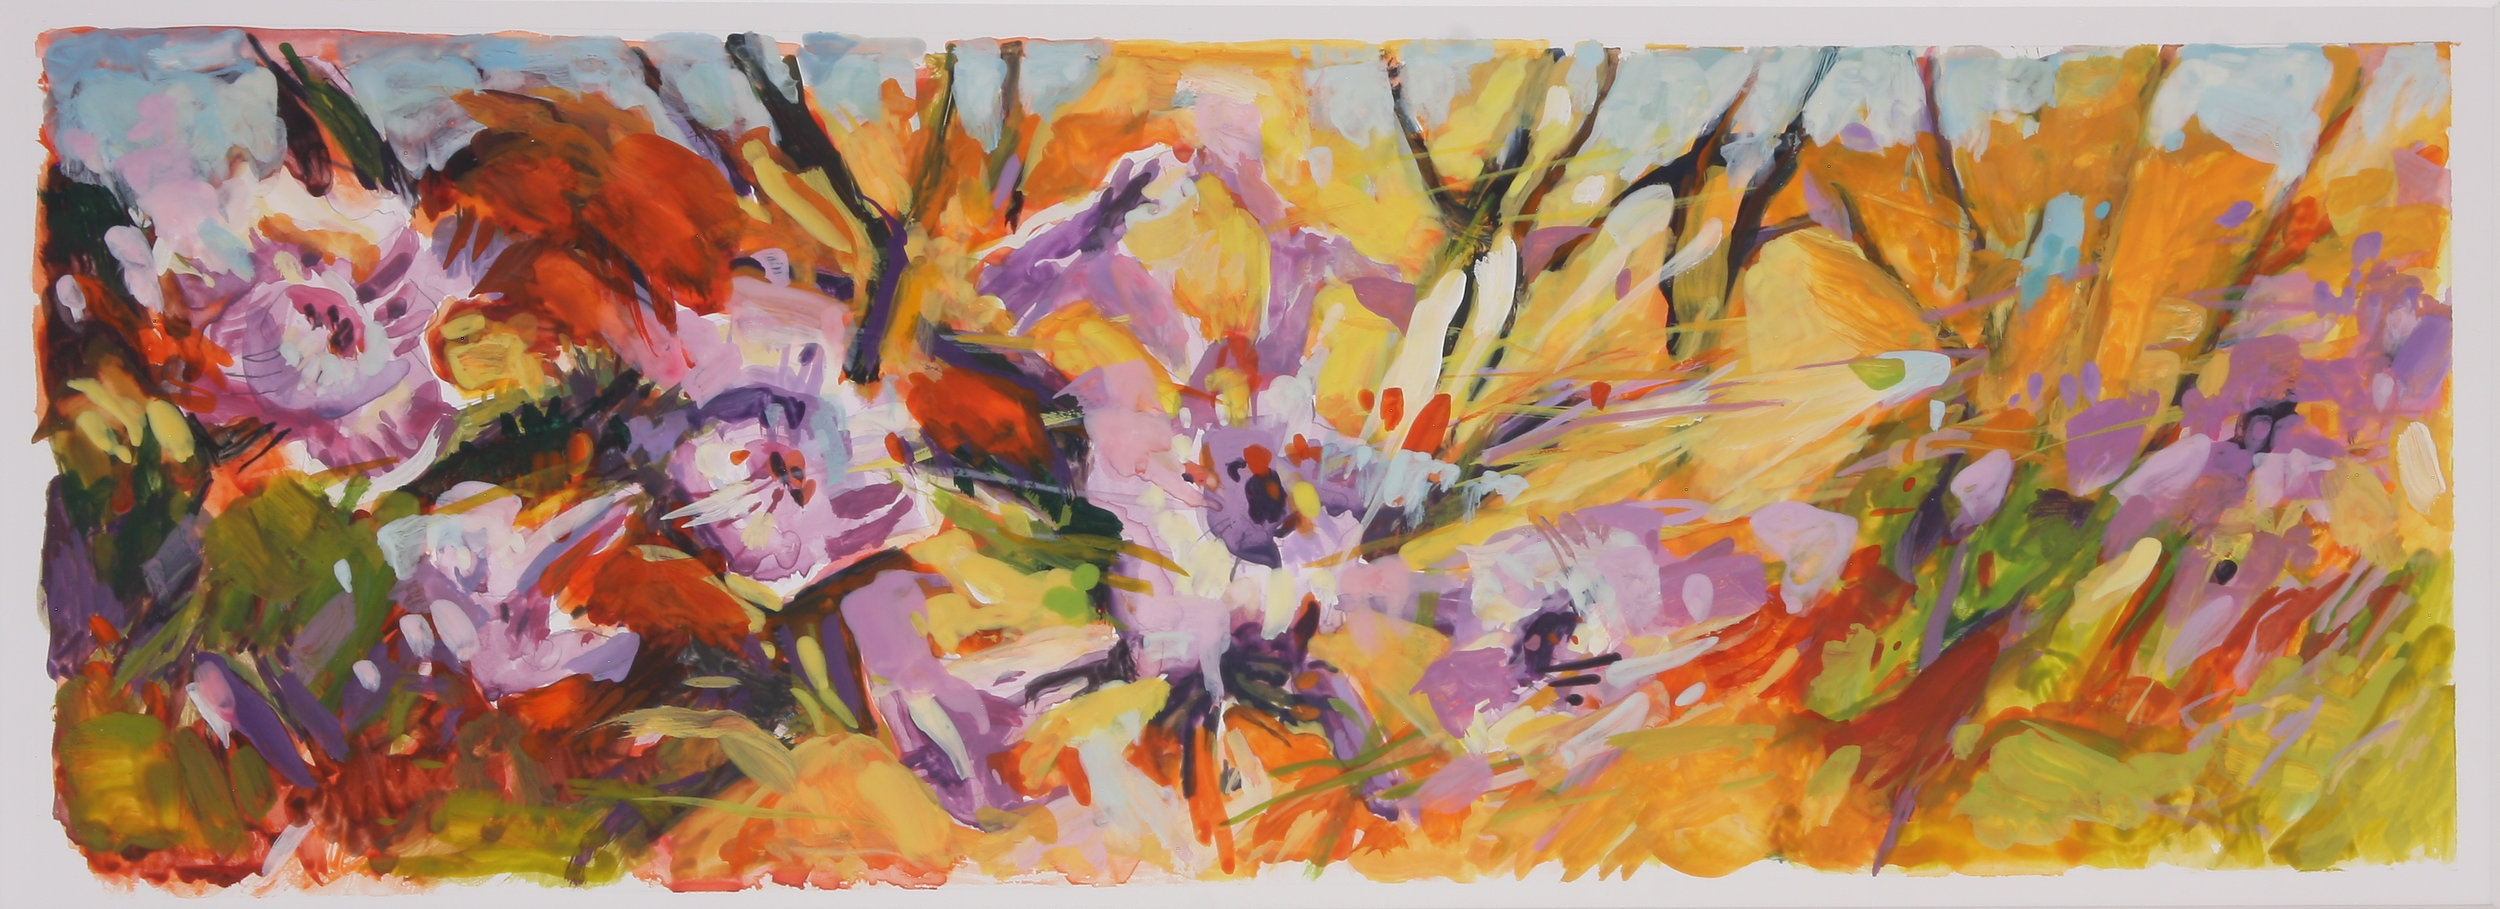 After the Fires - Poodle Dog Bush 5'' x 15.5'' gouache on Yupo